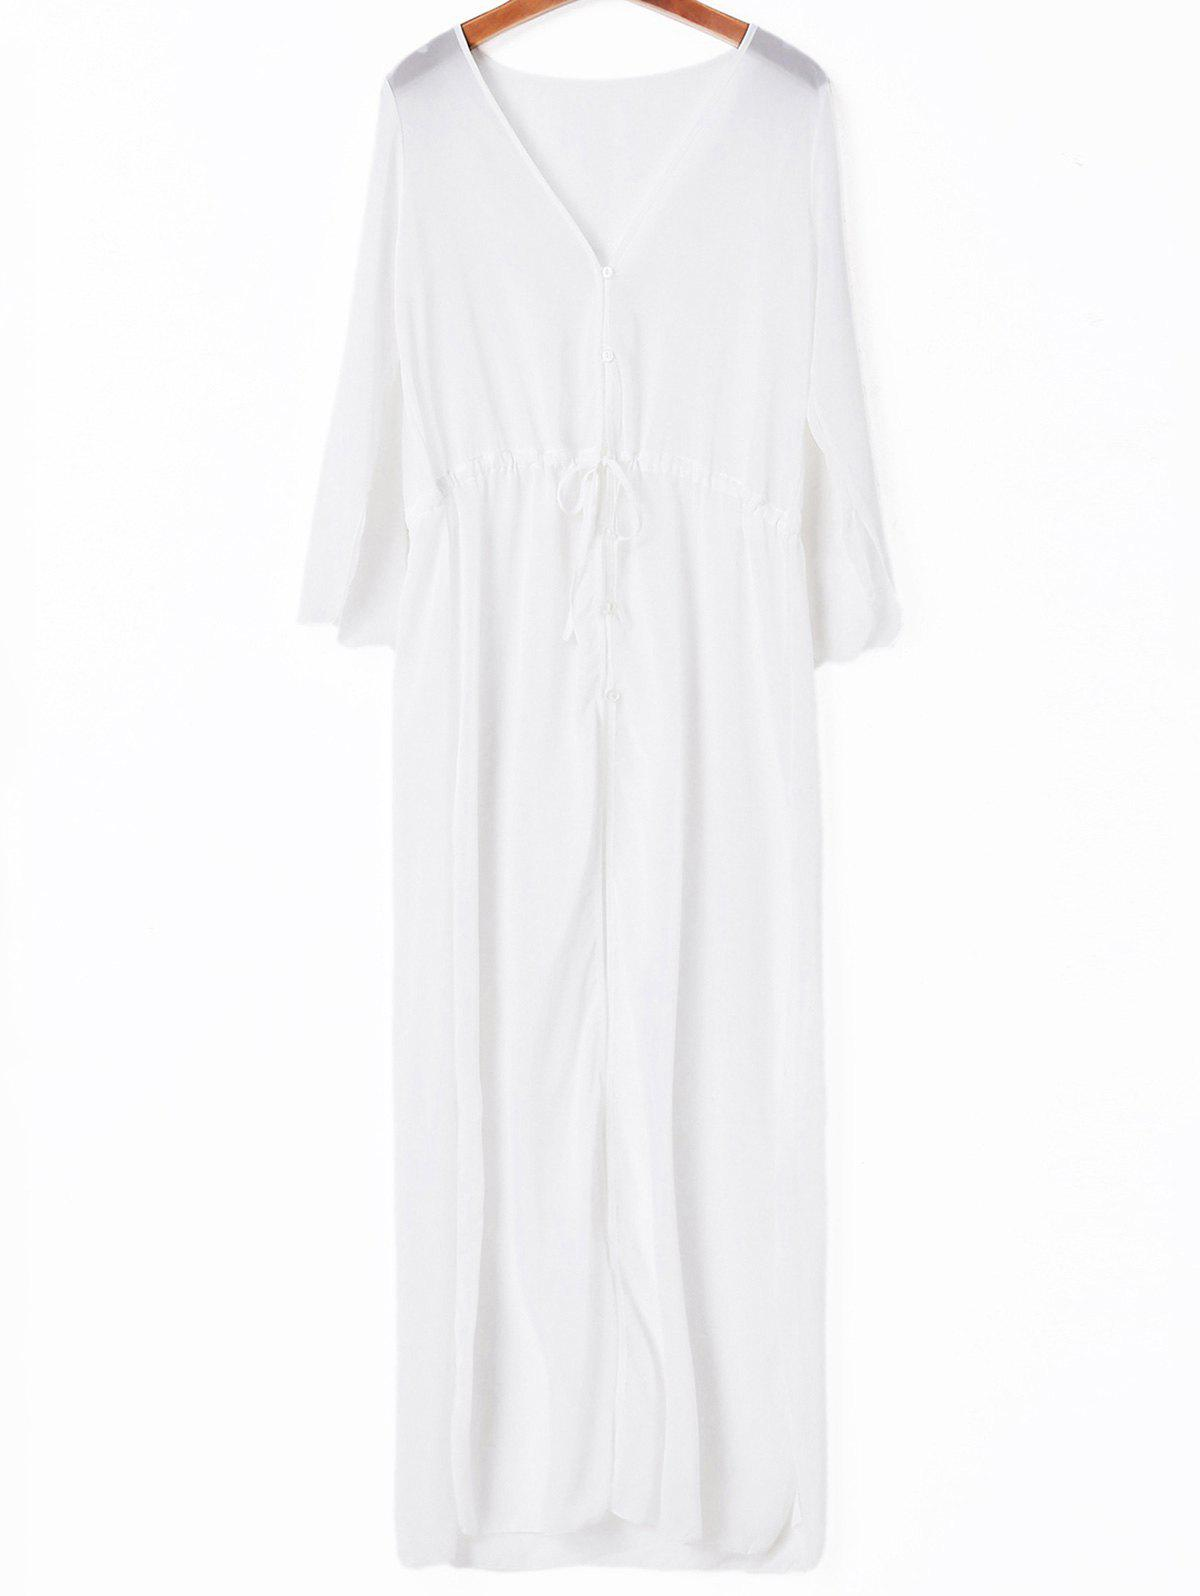 Stylish Solid Color Drawstring Women's Cover-Up - ONE SIZE(FIT SIZE XS TO M) WHITE